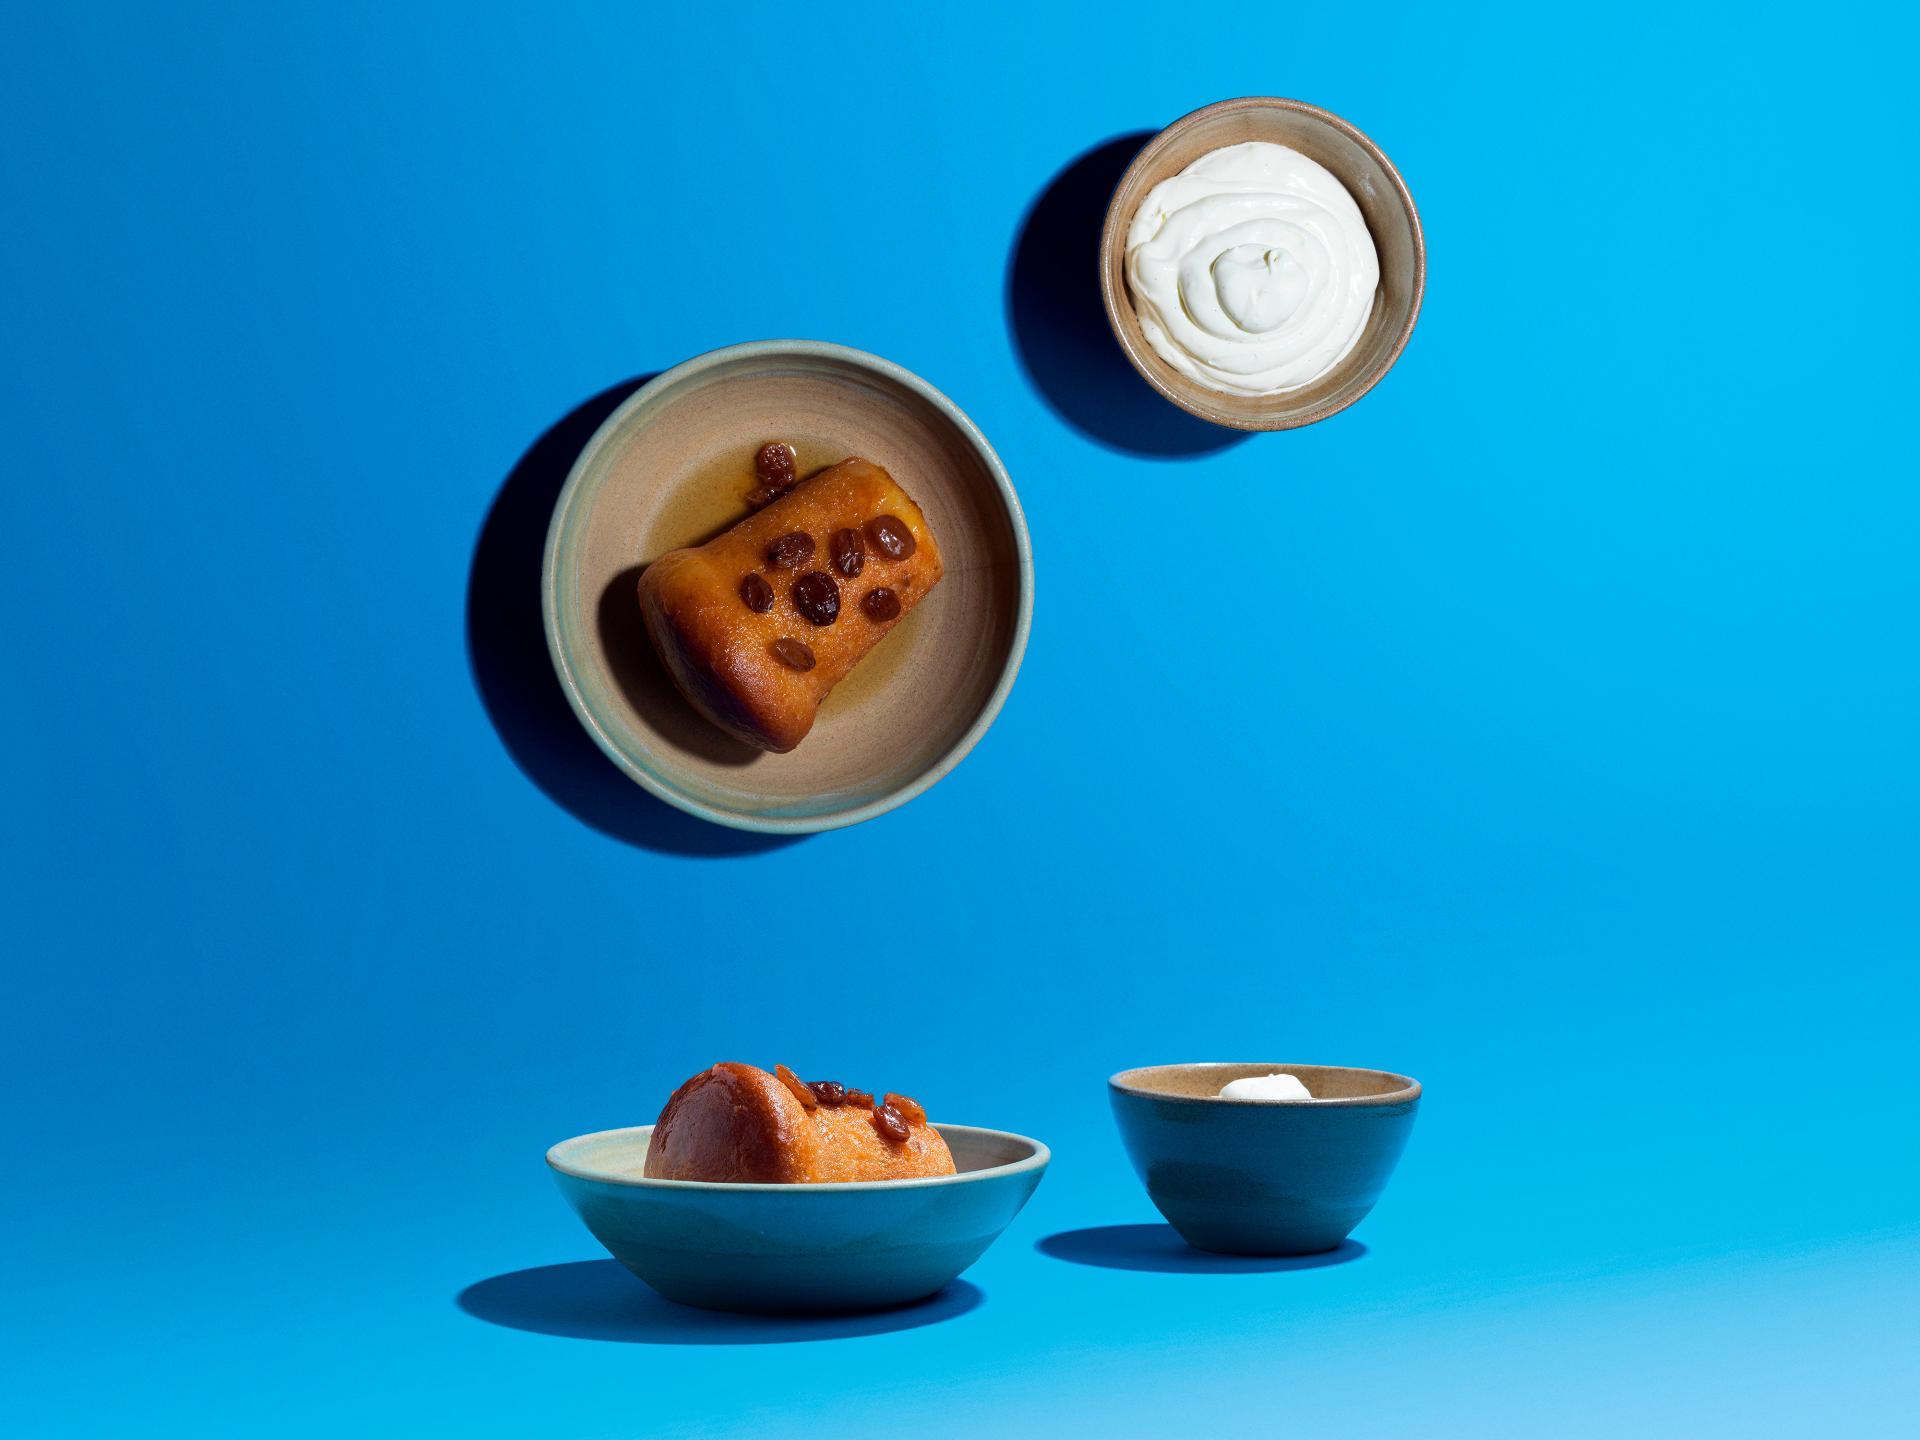 Five Dishes: Rum baba with Chantilly cream